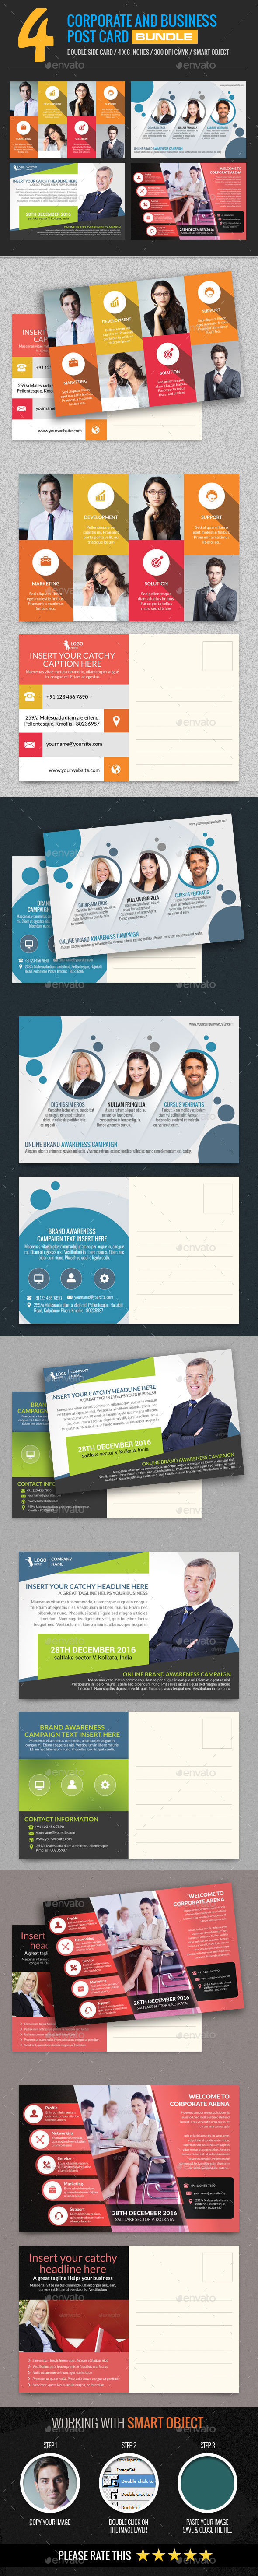 4 In 1 Corporate and Business Post Card Bundle - Cards & Invites Print Templates